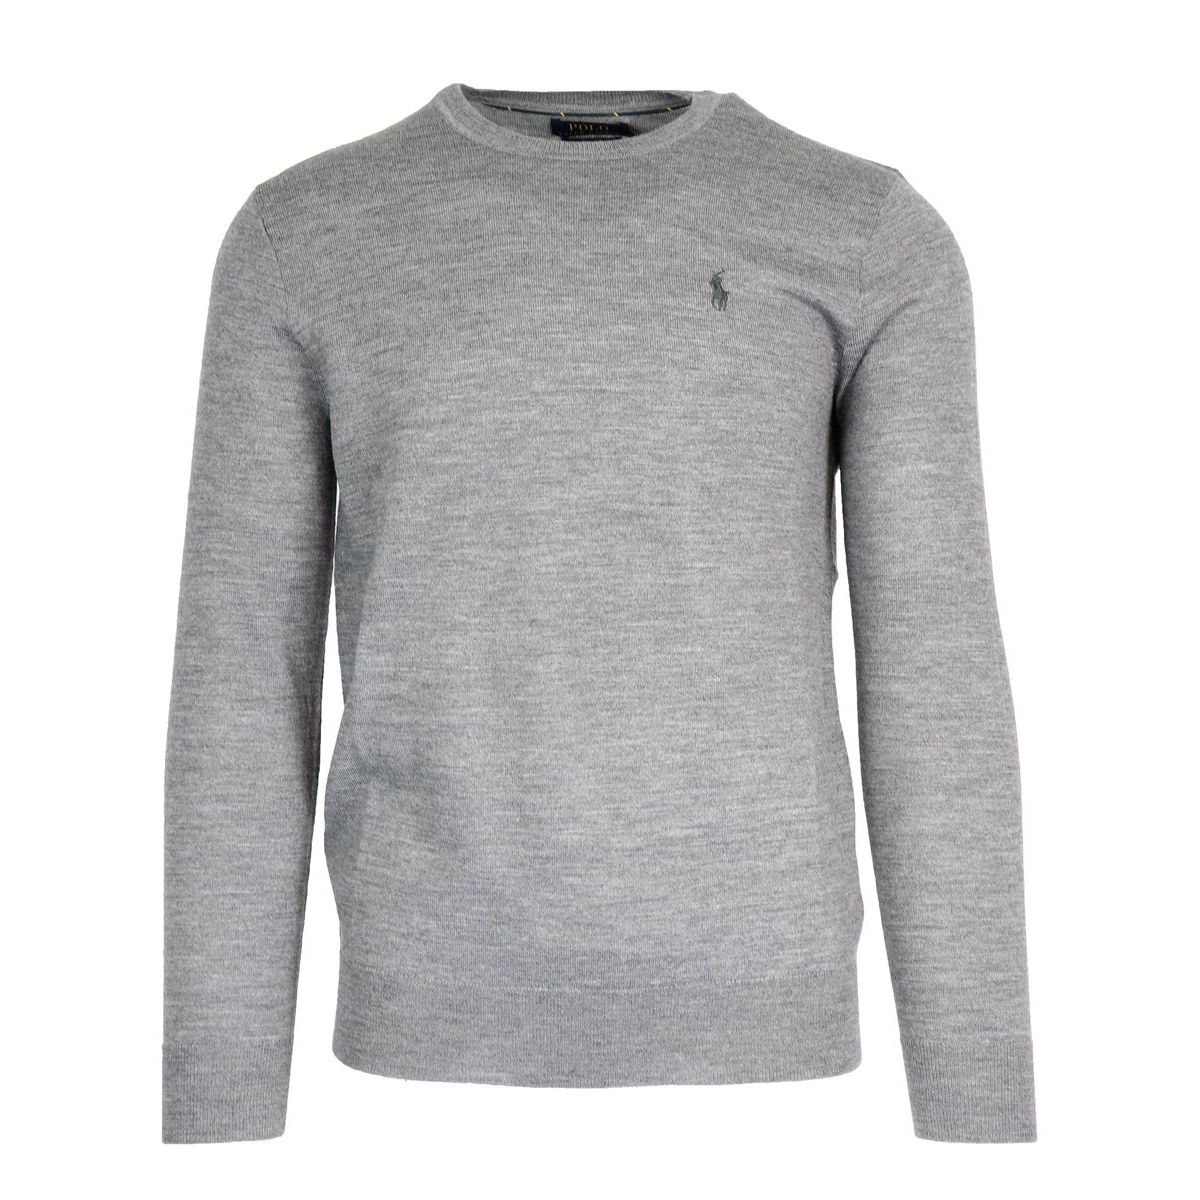 Wool crewneck pullover with logo embroidery Grey Polo Ralph Lauren